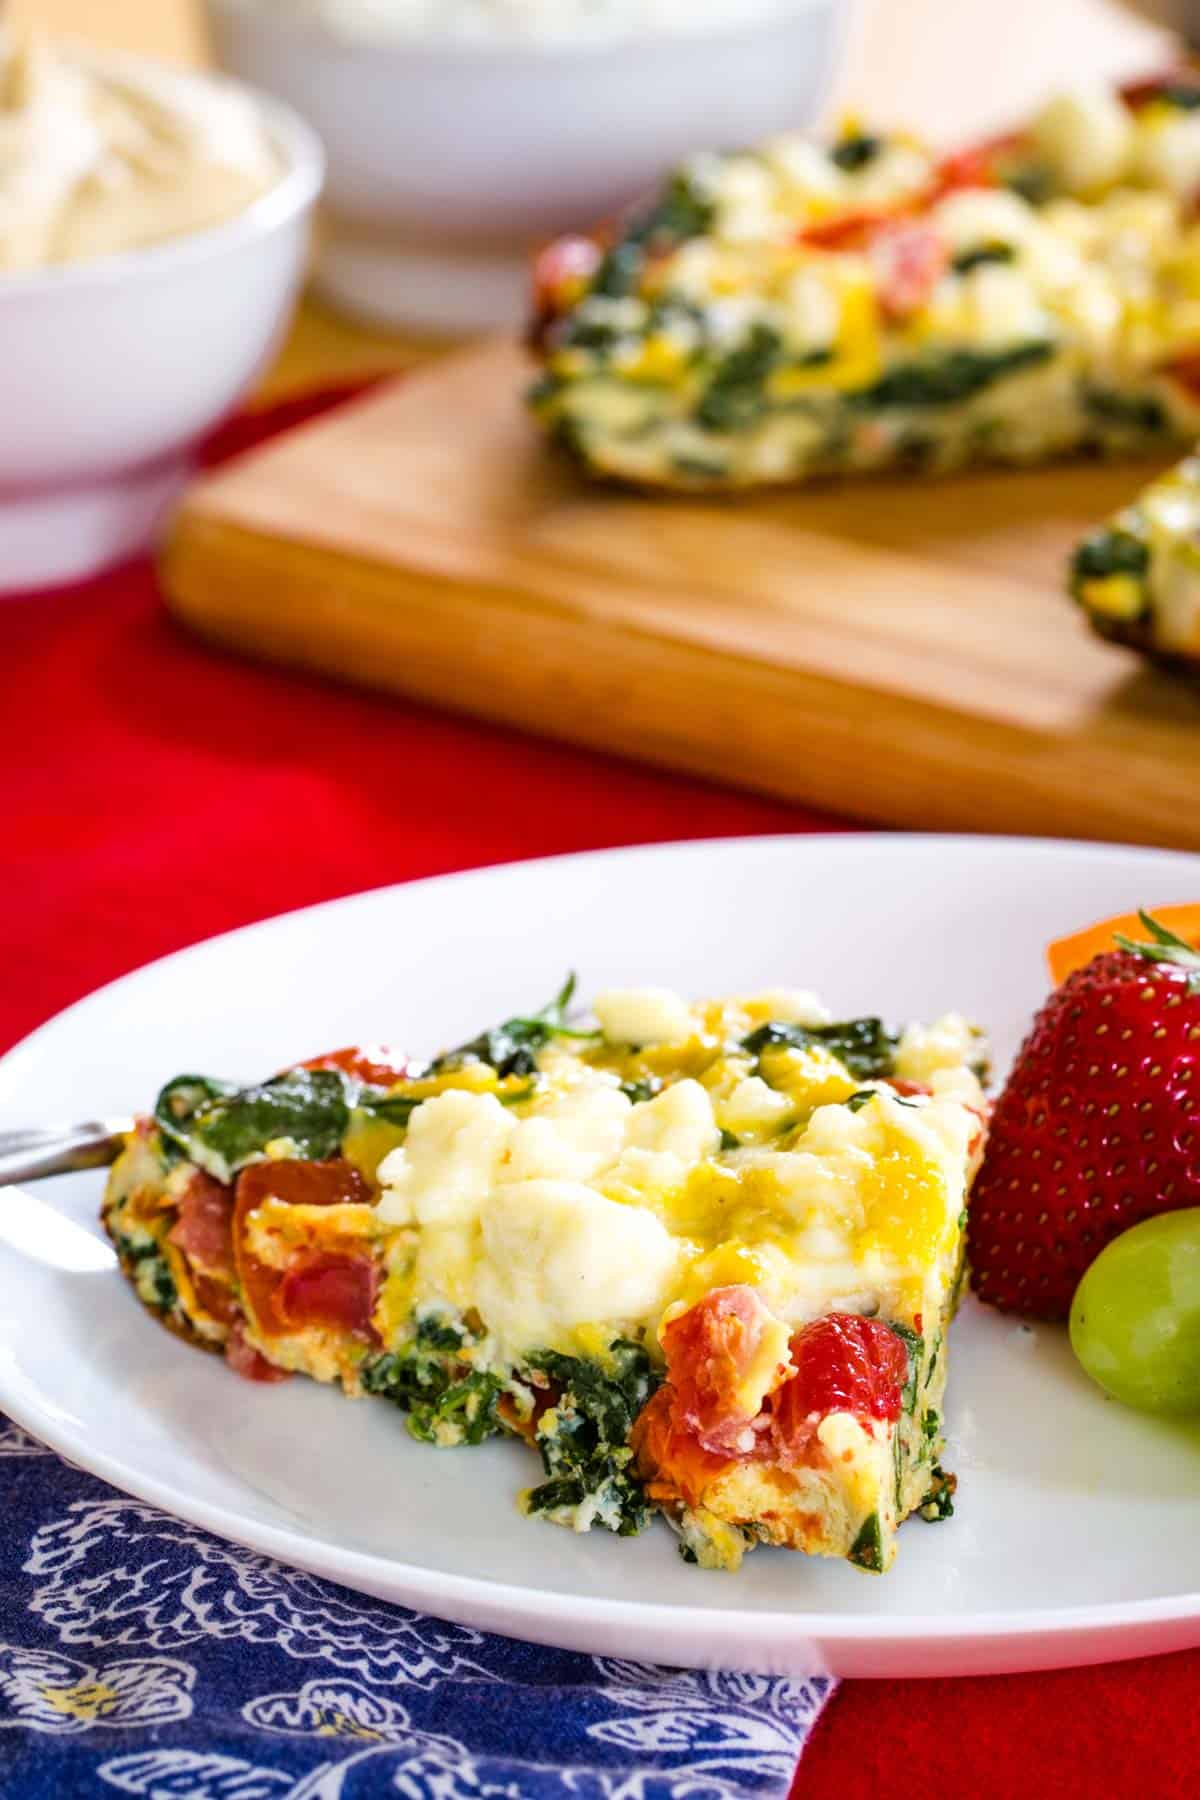 A piece of Spinach Tomato Feta Frittata on a white plate